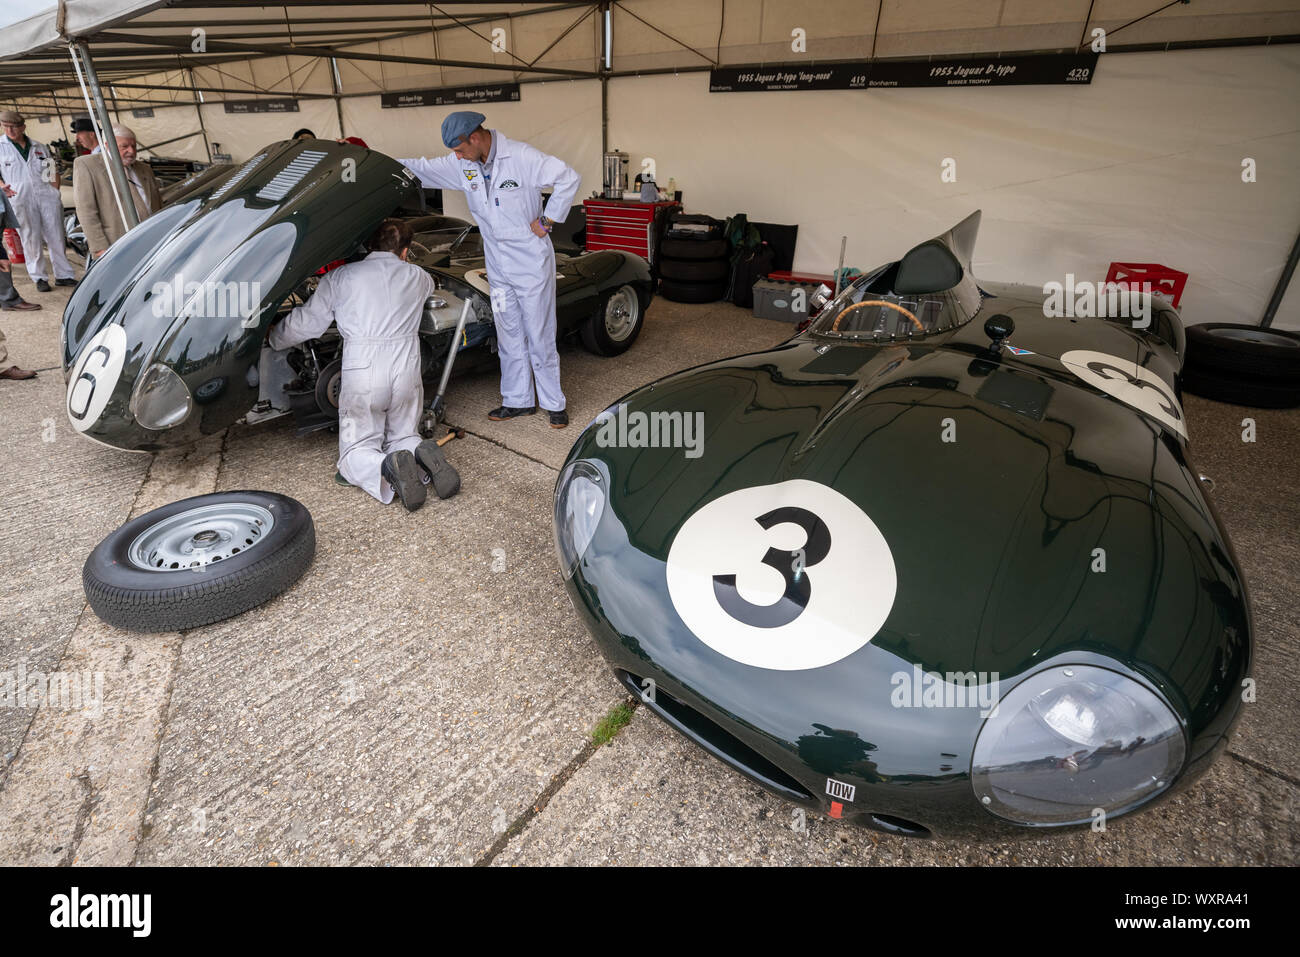 Jaguar D Type. Vintage cars from the 1930's to the 1950's in the paddock during the Goodwood Revival car festival, UK. Stock Photo